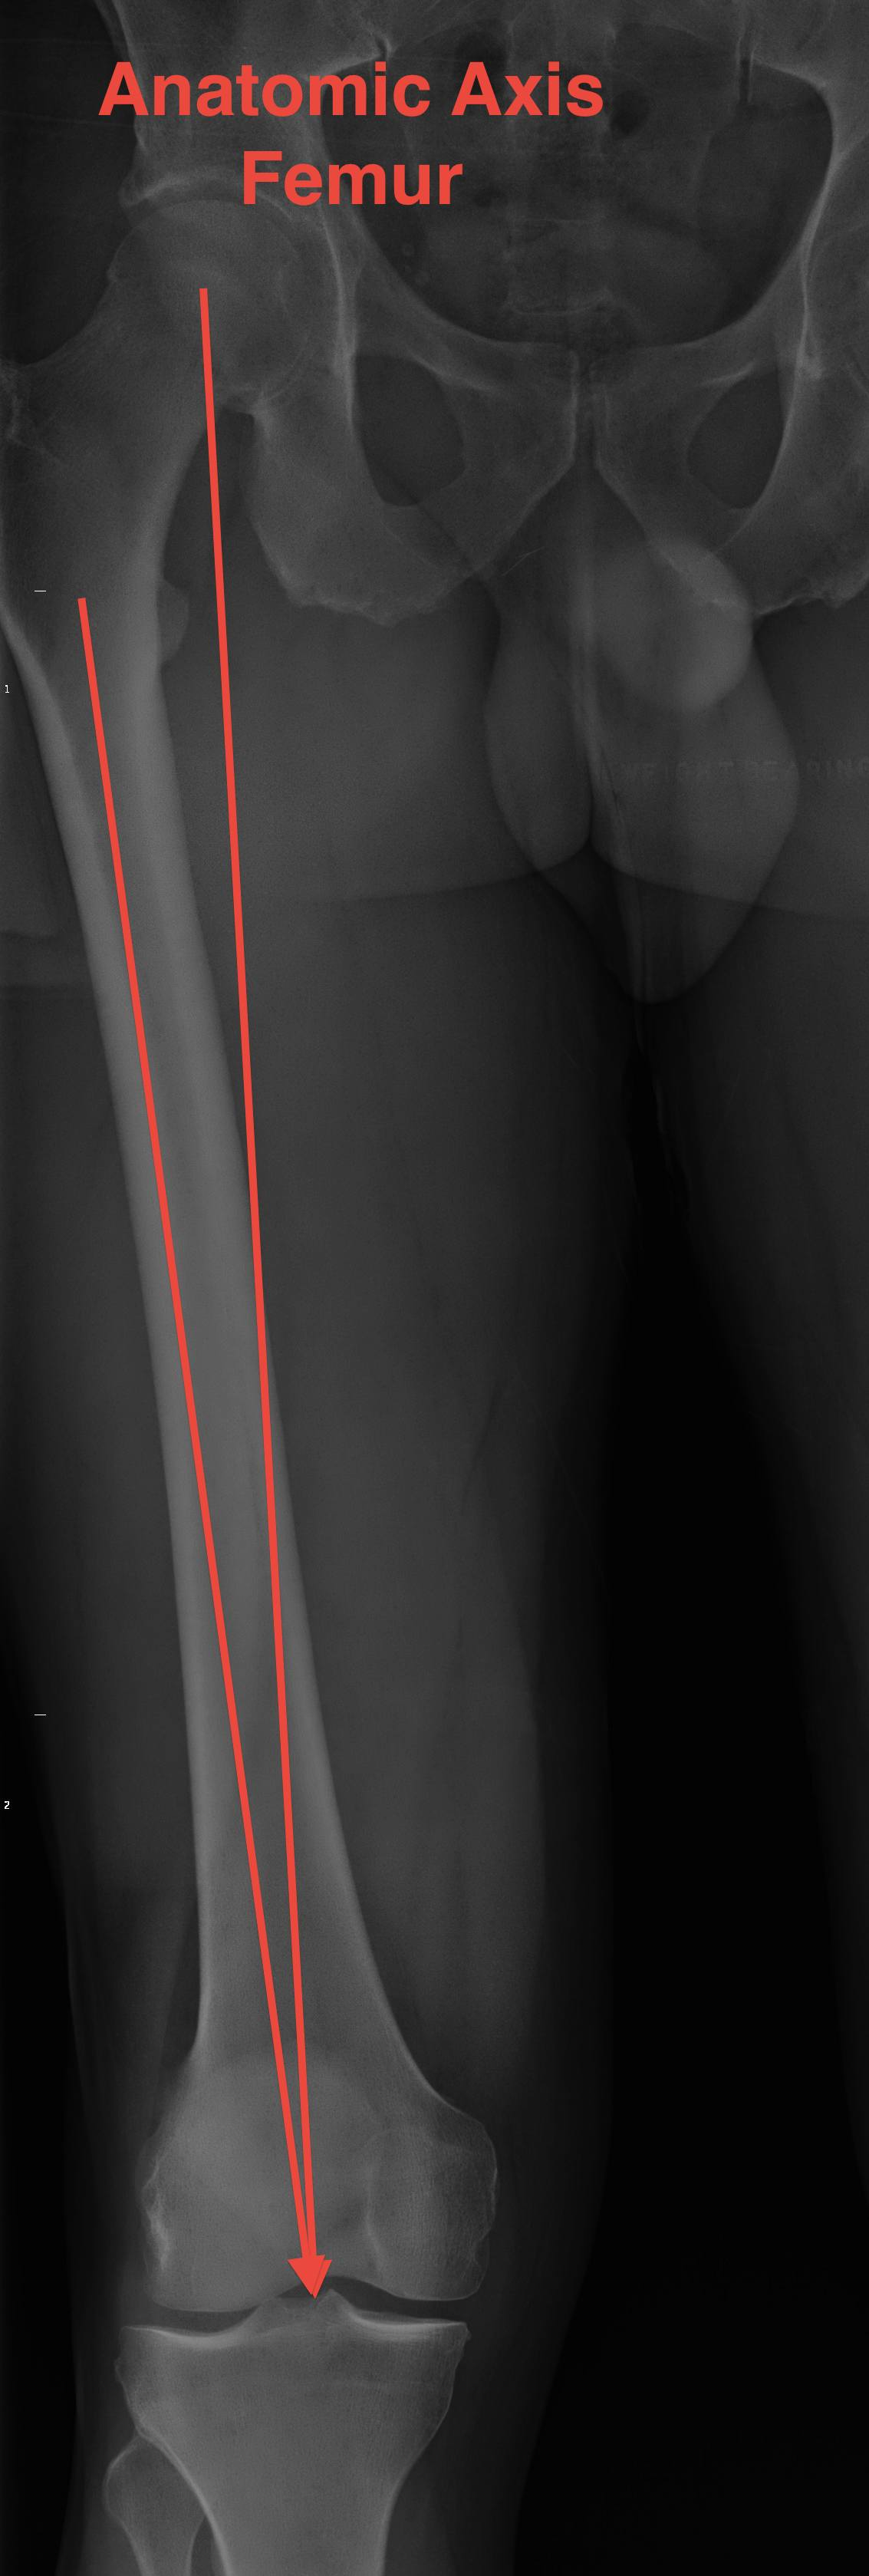 Anatomic Axis Femur